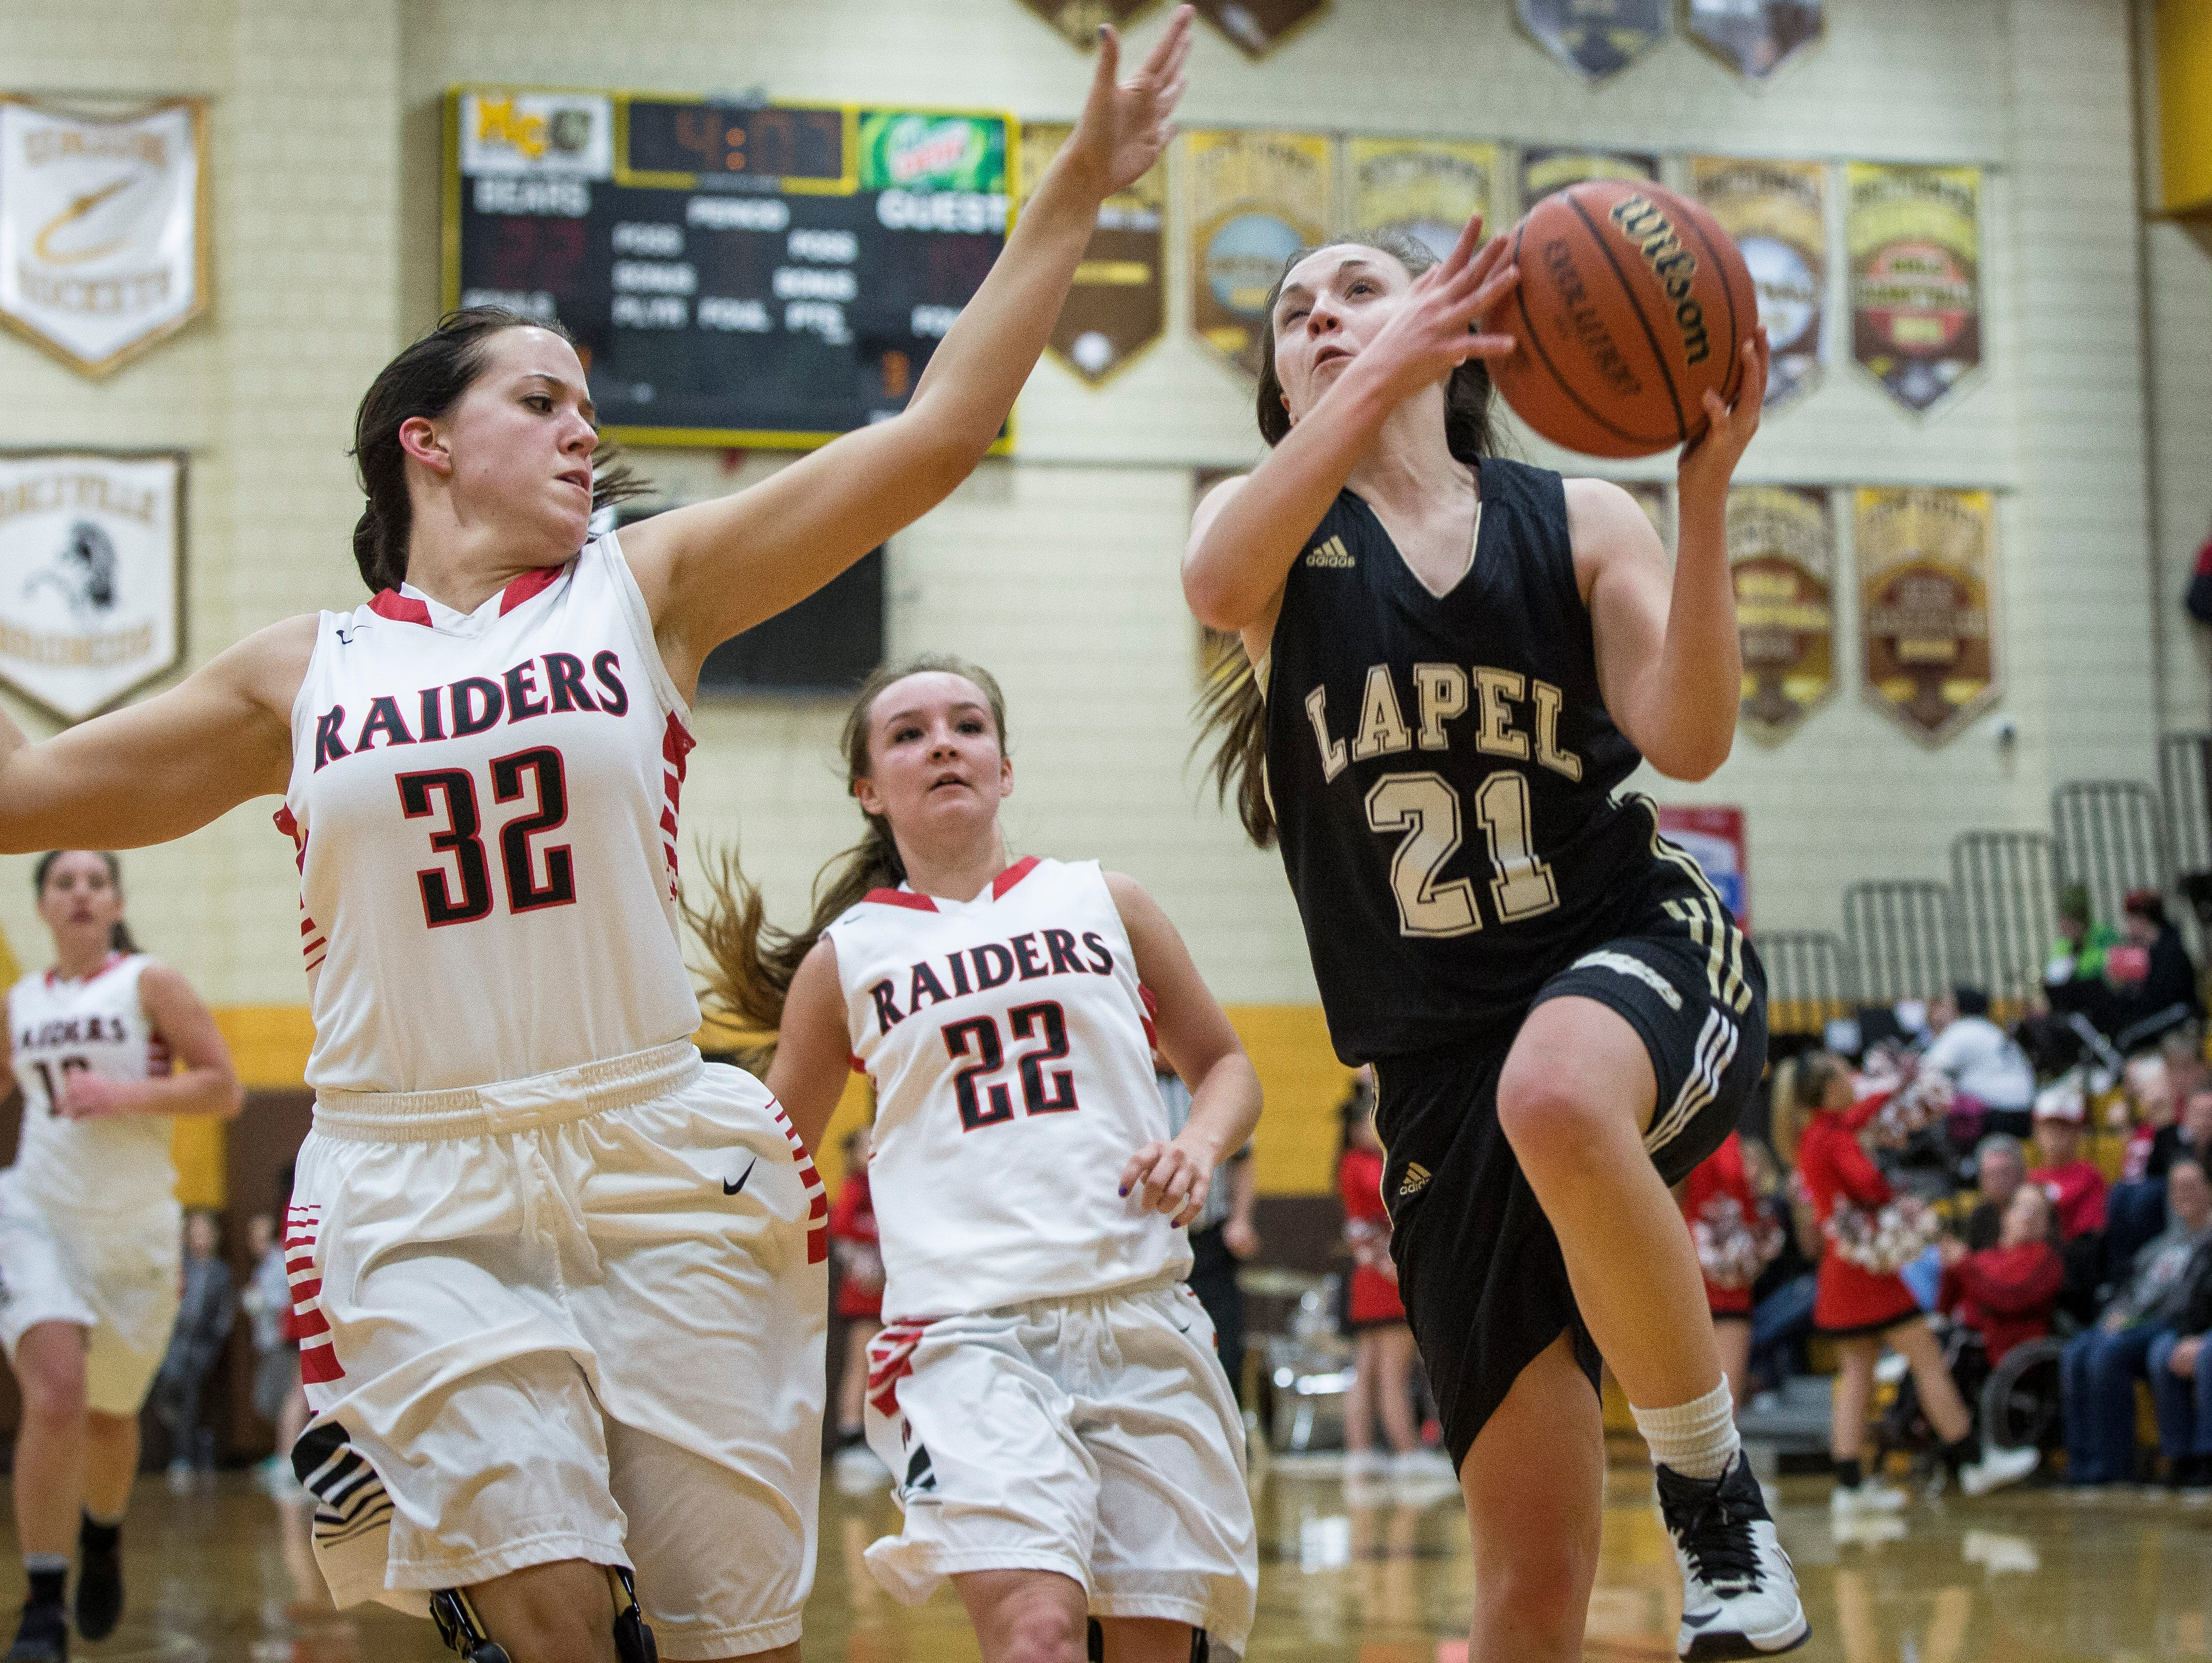 Wapahani lost 44-42 on Feb. 3 against Lapel in the Class 2A Semi-final at Monroe Central. Lapel will play Monroe Central on Feb. 4 for the championship game.